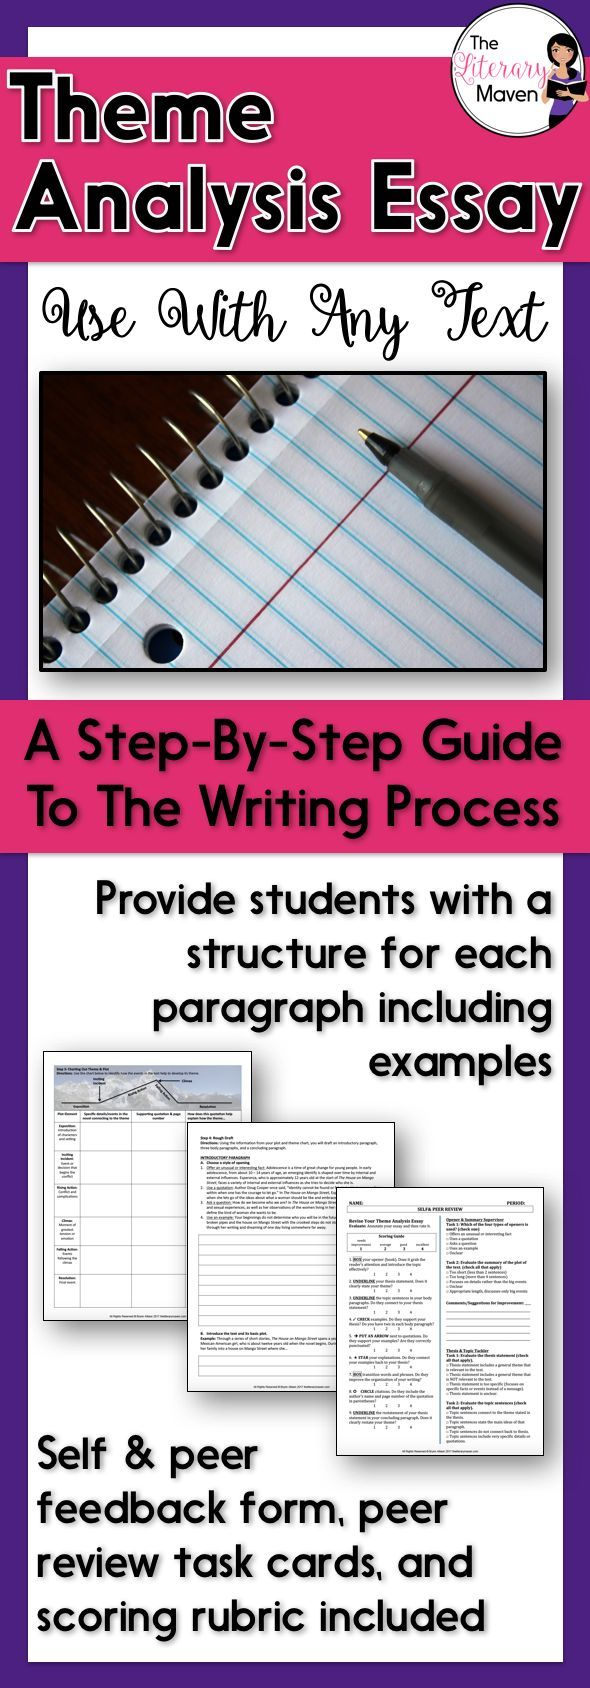 001 Theme Analysis Essay Step by Step Writing Guide for Use